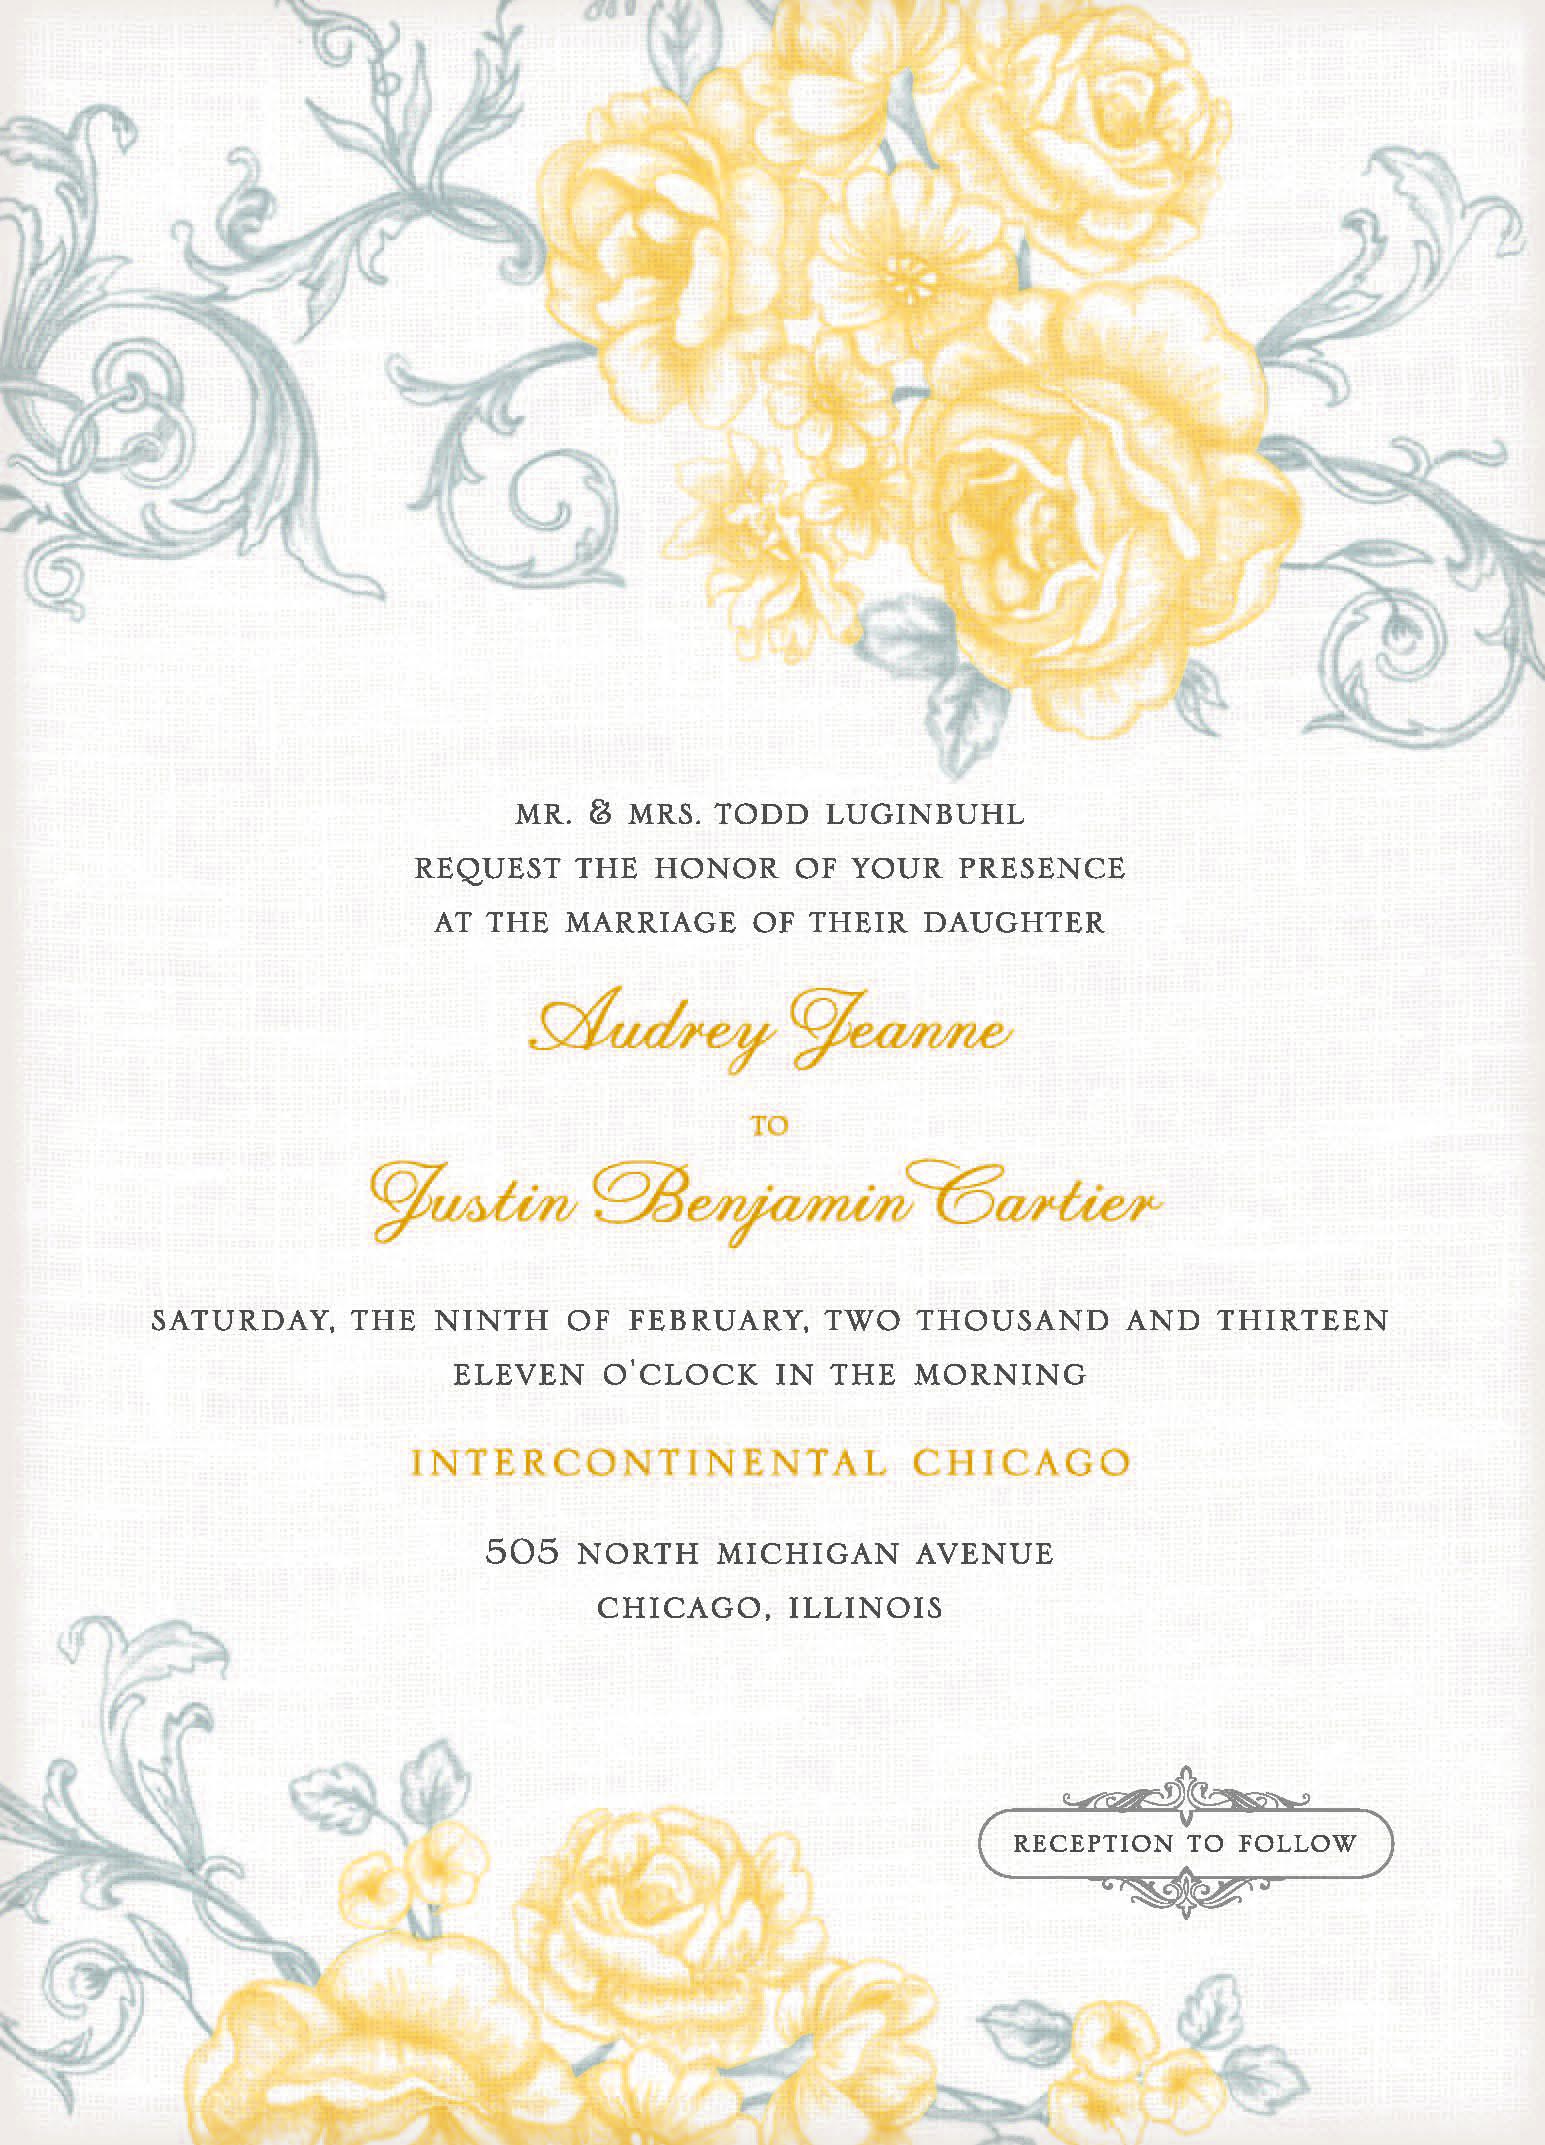 Free Wedding Invitation Templates For Word 2010